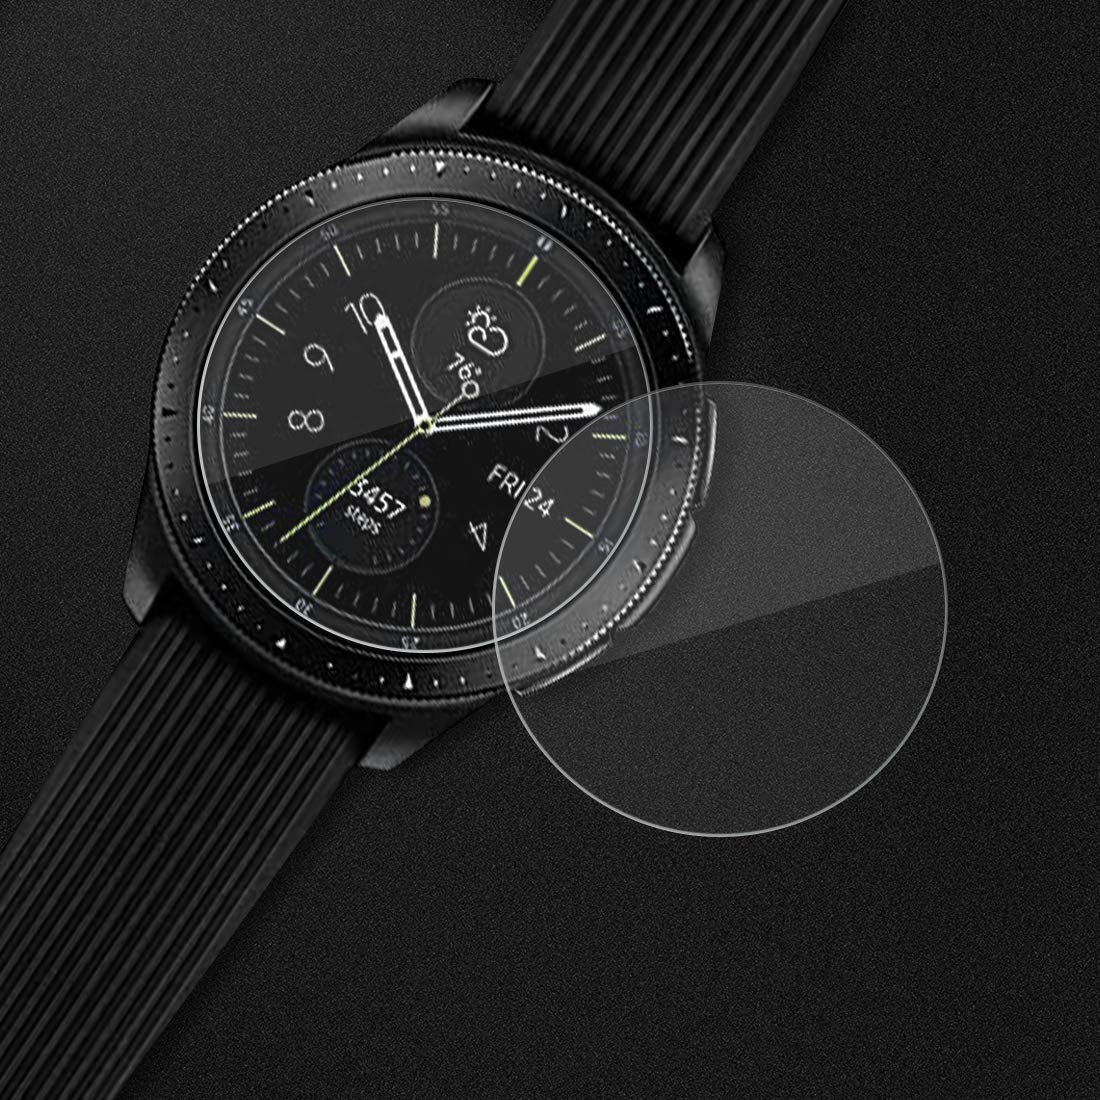 Samsung Galaxy Watch 42mm Screen Protector Avidet 9h Hardness Spigen Tempered Glass Gear S3 Classic Frontier Glastr Slim 2pack Premium For 3 Pack